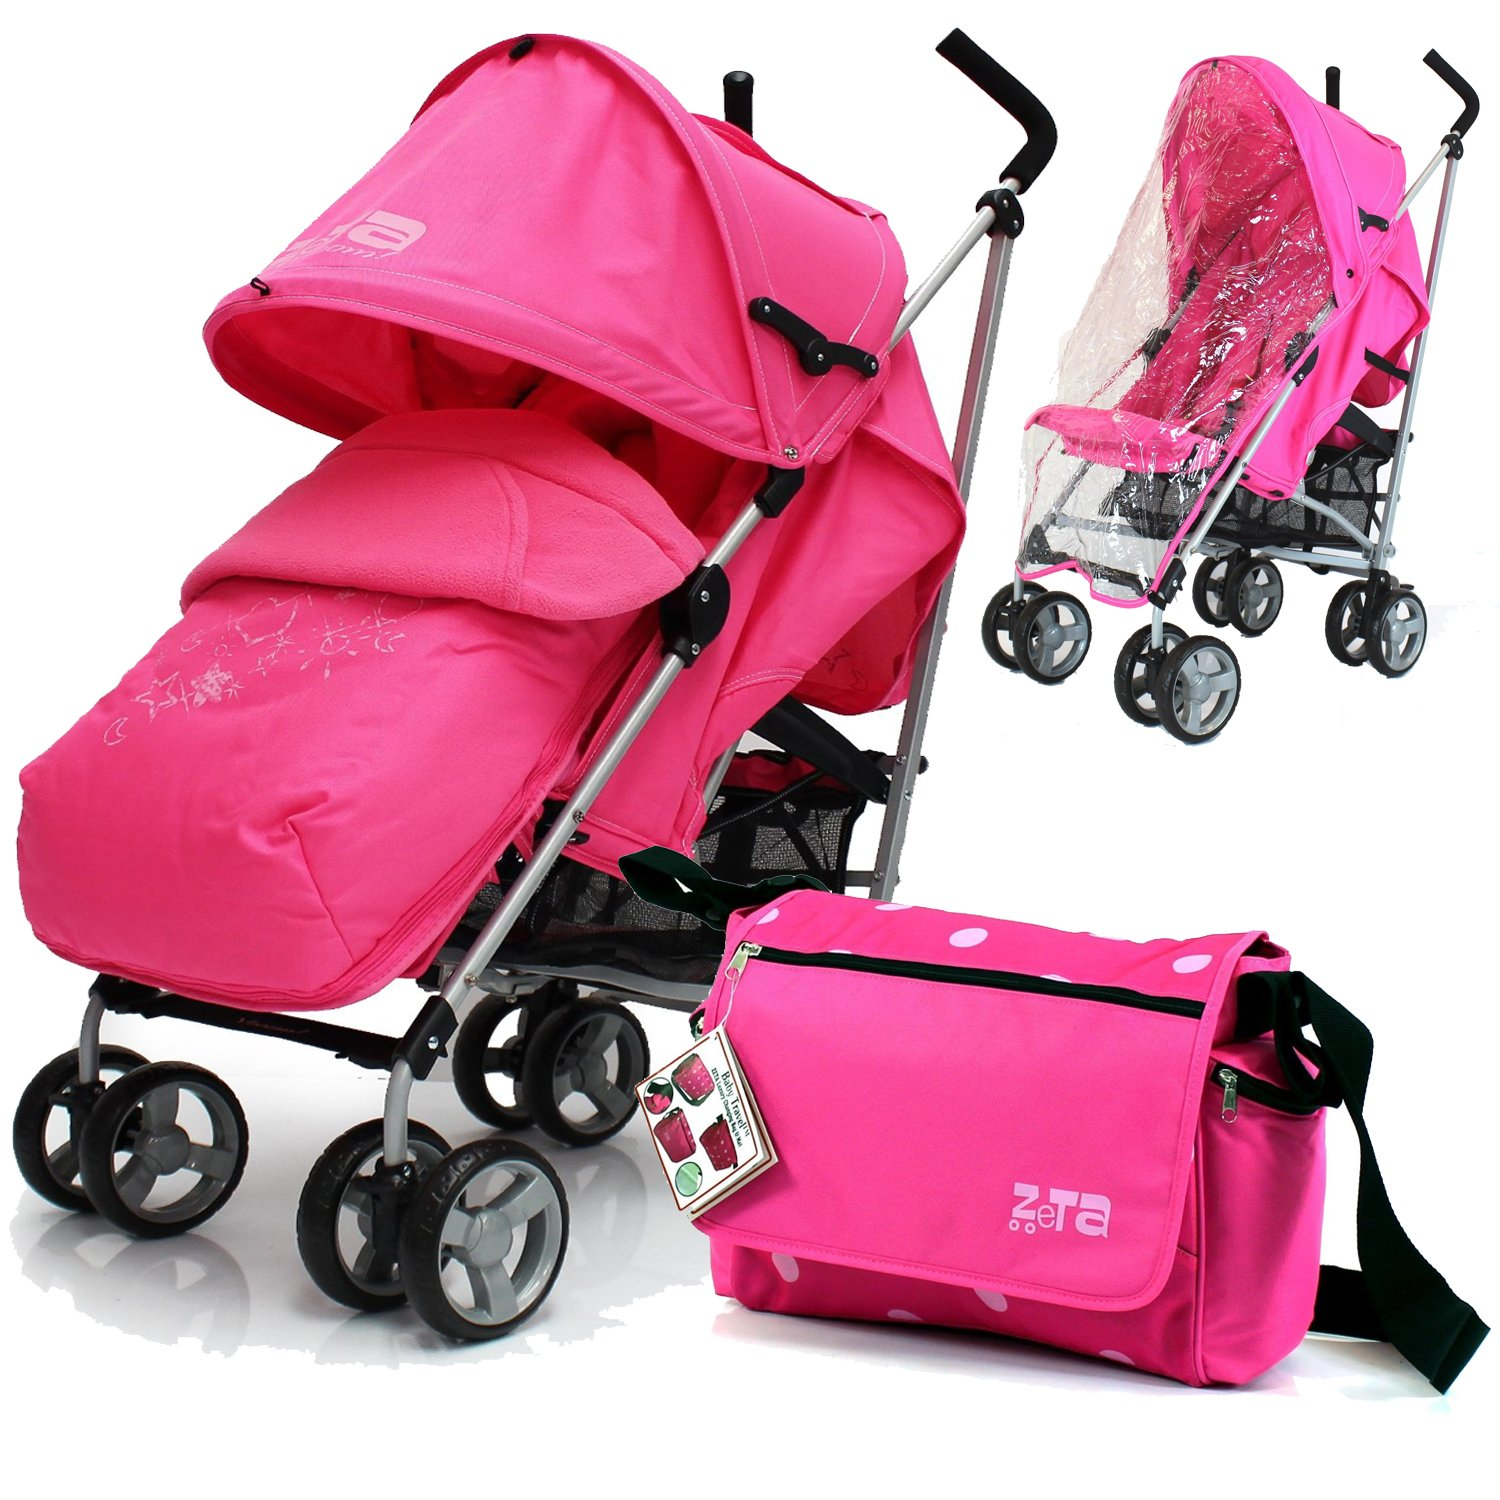 Baby Stroller Zeta Vooom Complete - Raspberry (Pink) With (H& S) Footmuff, Headhugger, Changing Bag And Raincover